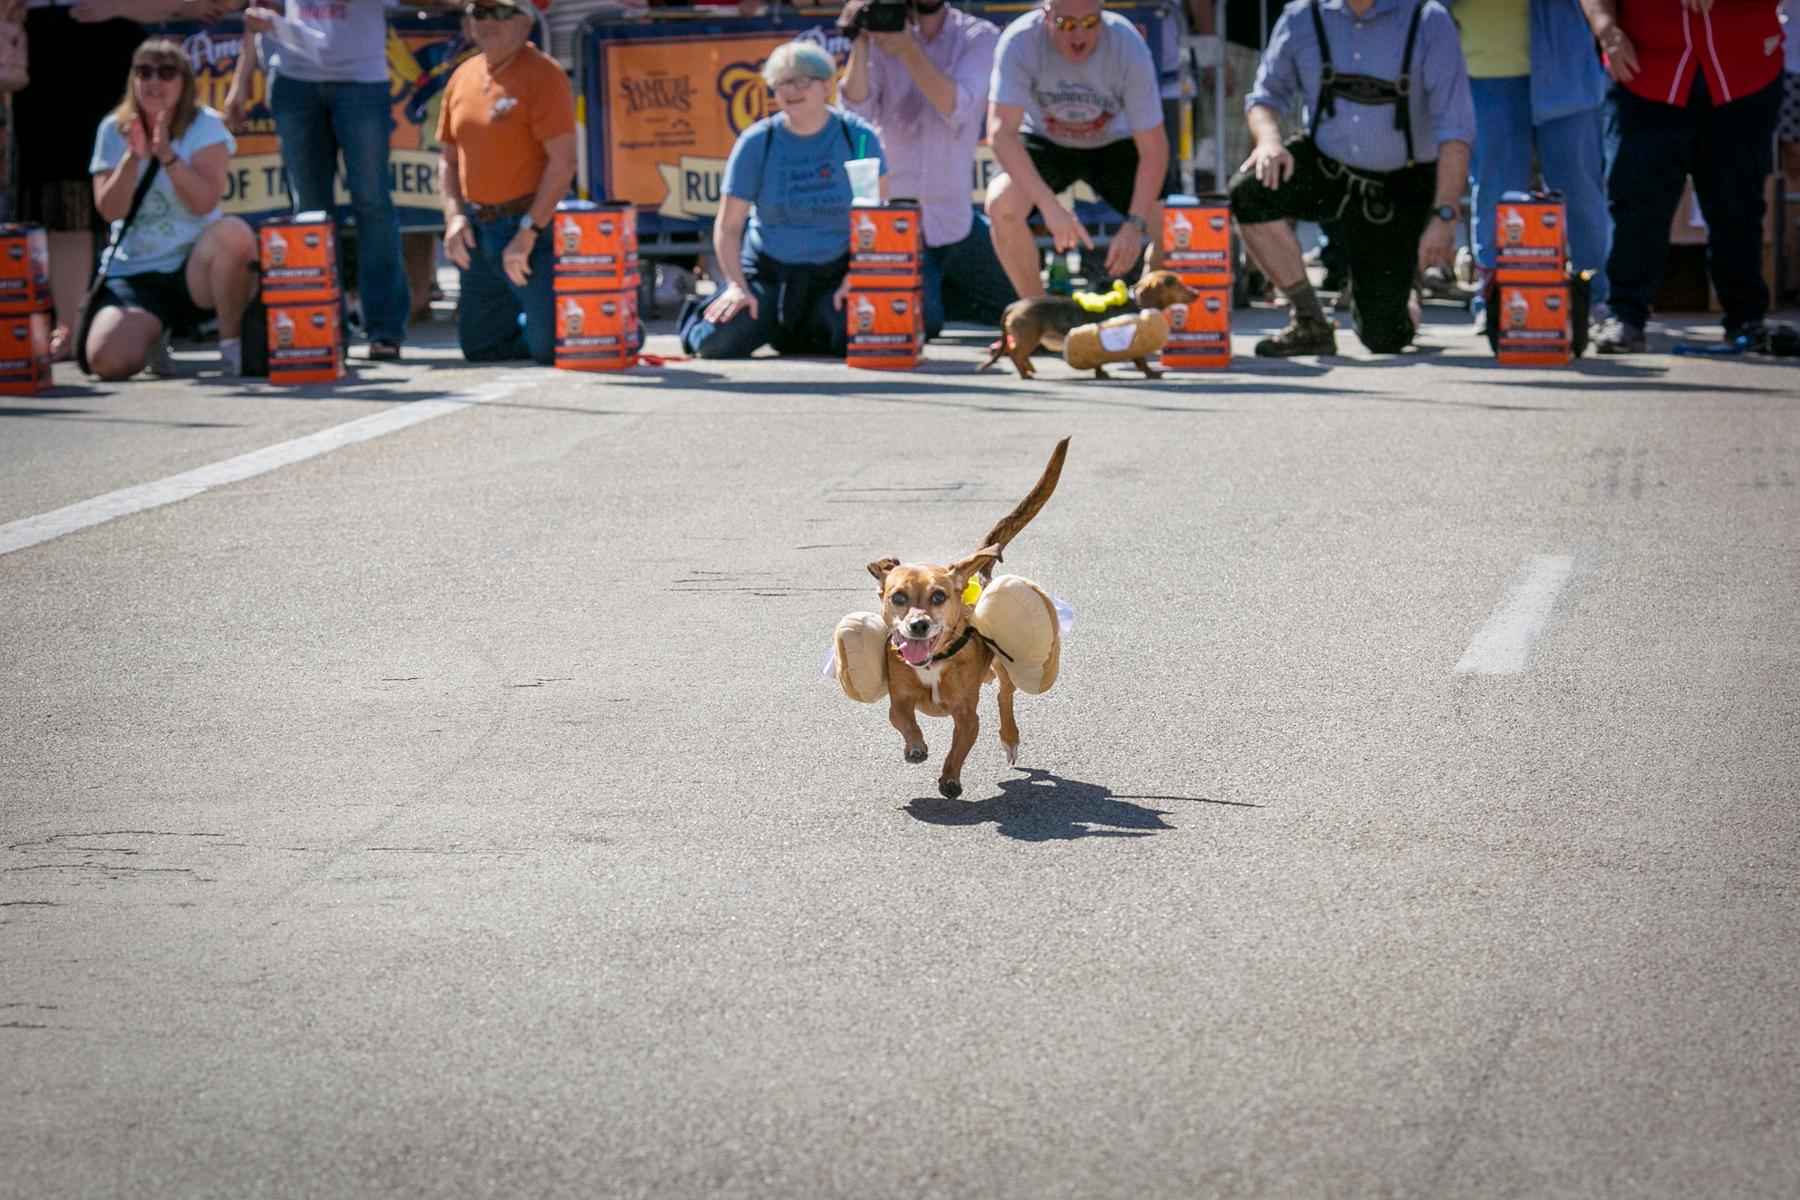 Oktoberfest Zinzinnati's 10th annual Running of the Wieners took place on Friday, September 15 on Race Street between 2nd and 3rd. This year's fastest pup was Gus, a dachshund with a dappled coat and little brown legs. Gus beat out the other 100 dachshunds who raced this year to claim the crown. / Image: Mike Bresnen Photography // Published: 9.16.17